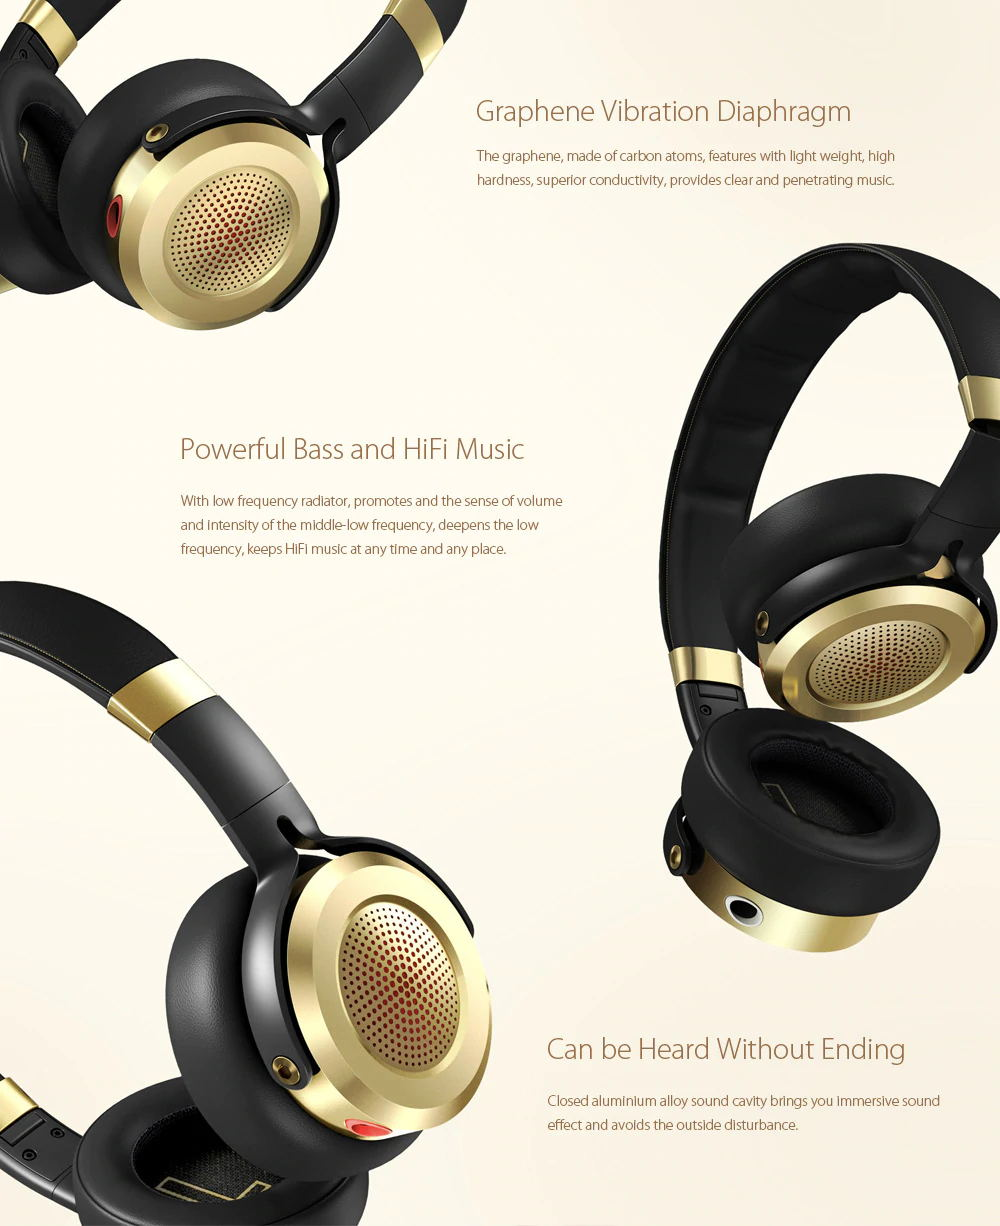 xiaomi mi headphones 2nd generation